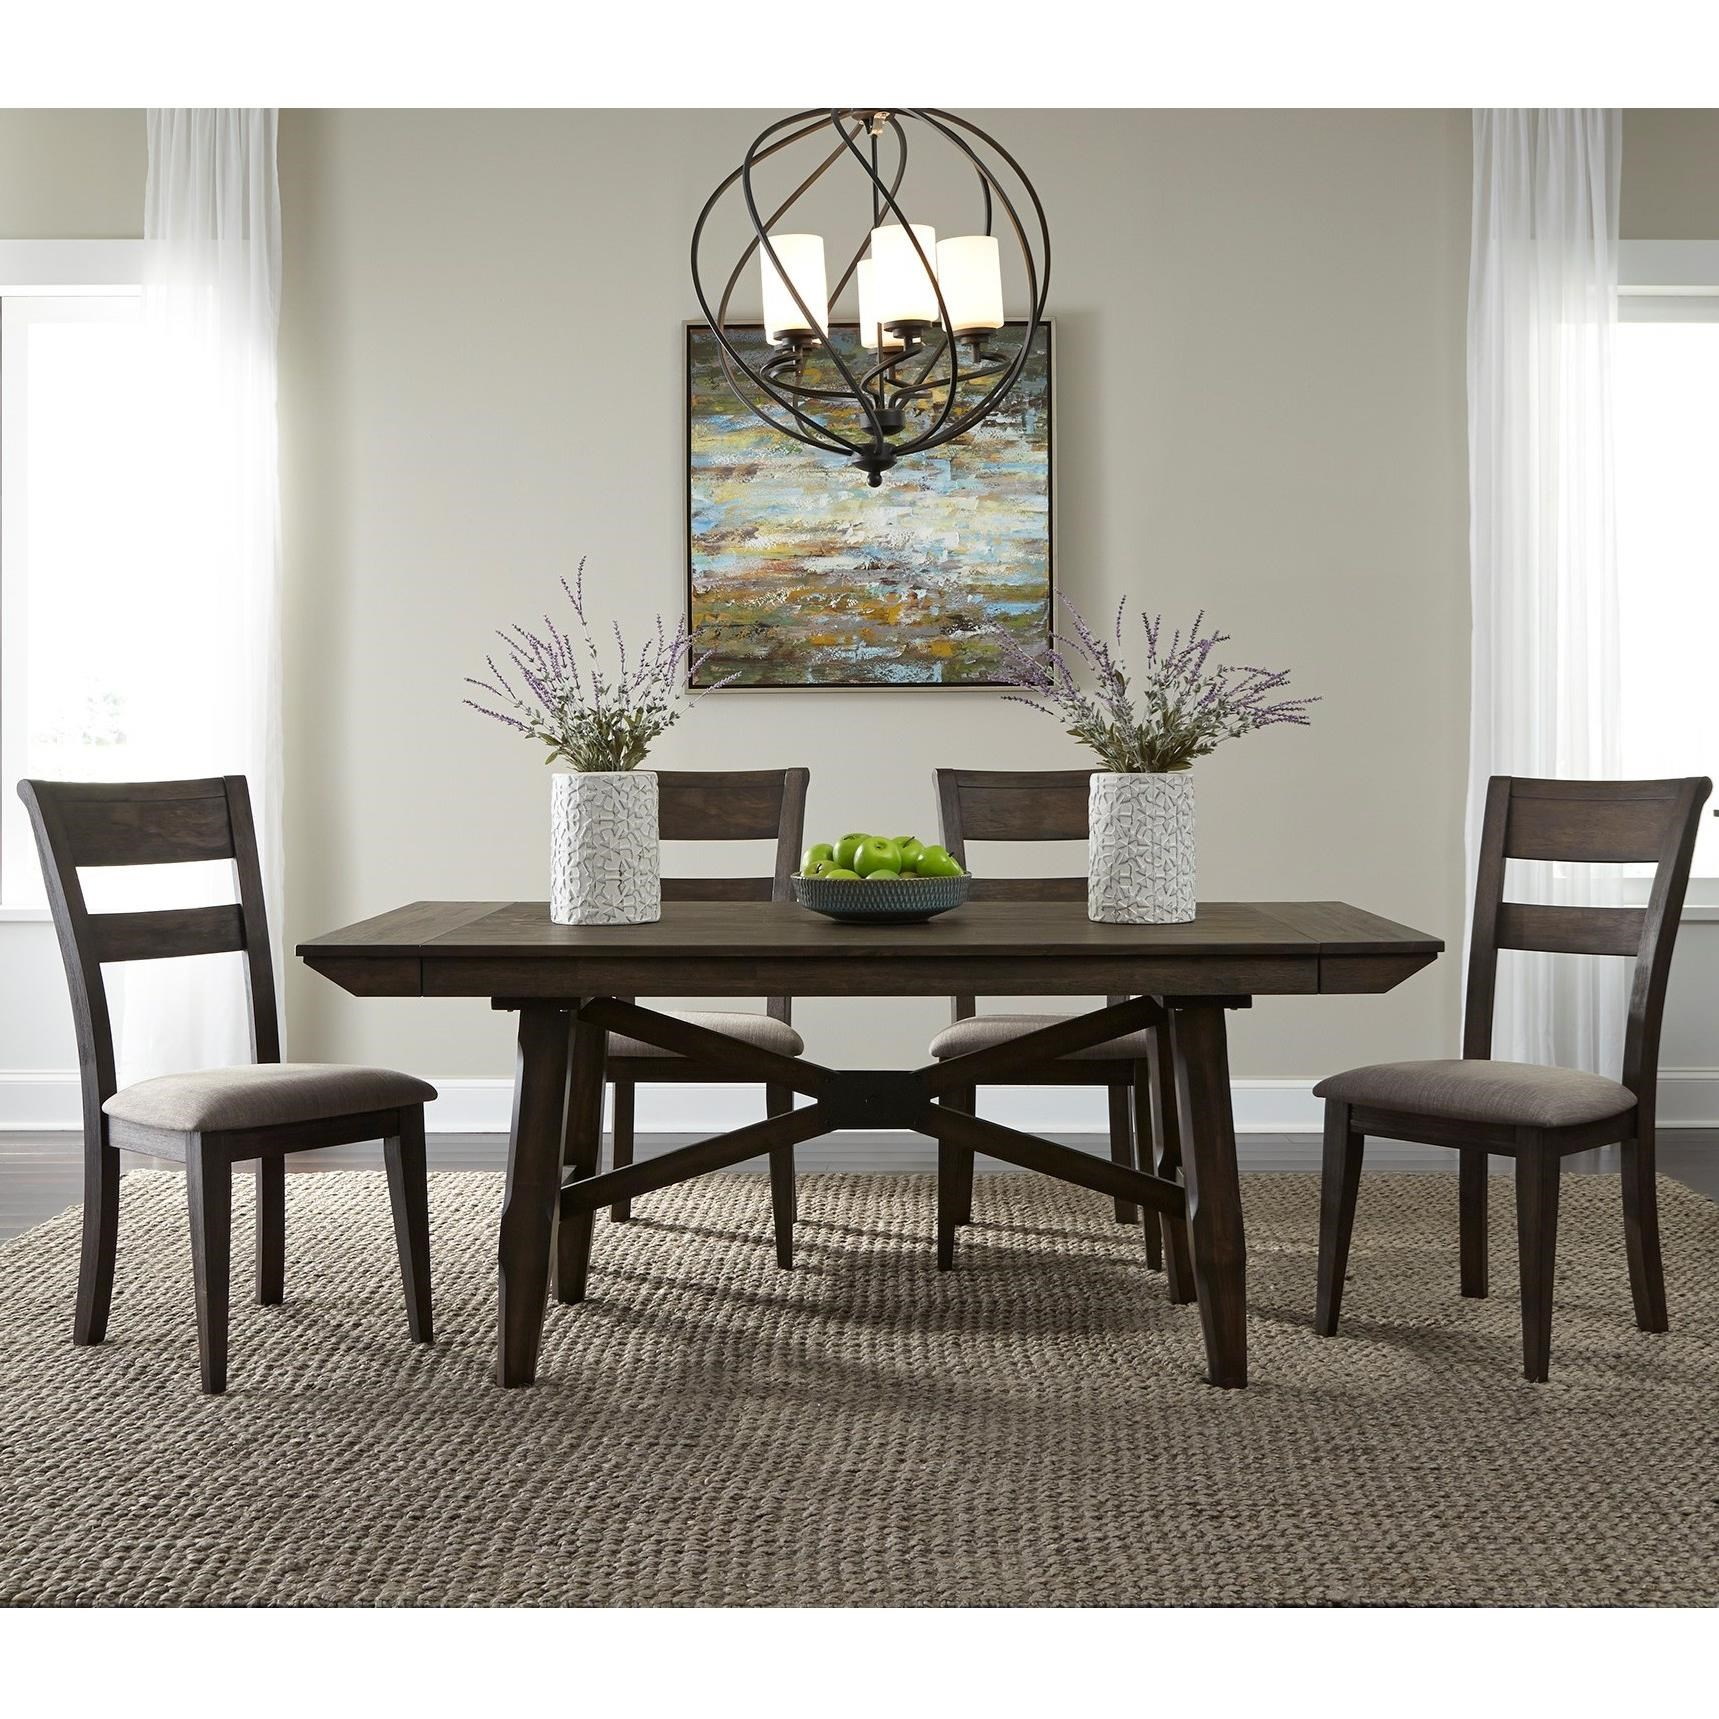 Double Bridge 5 Piece Trestle Table Set  by Liberty Furniture at Darvin Furniture